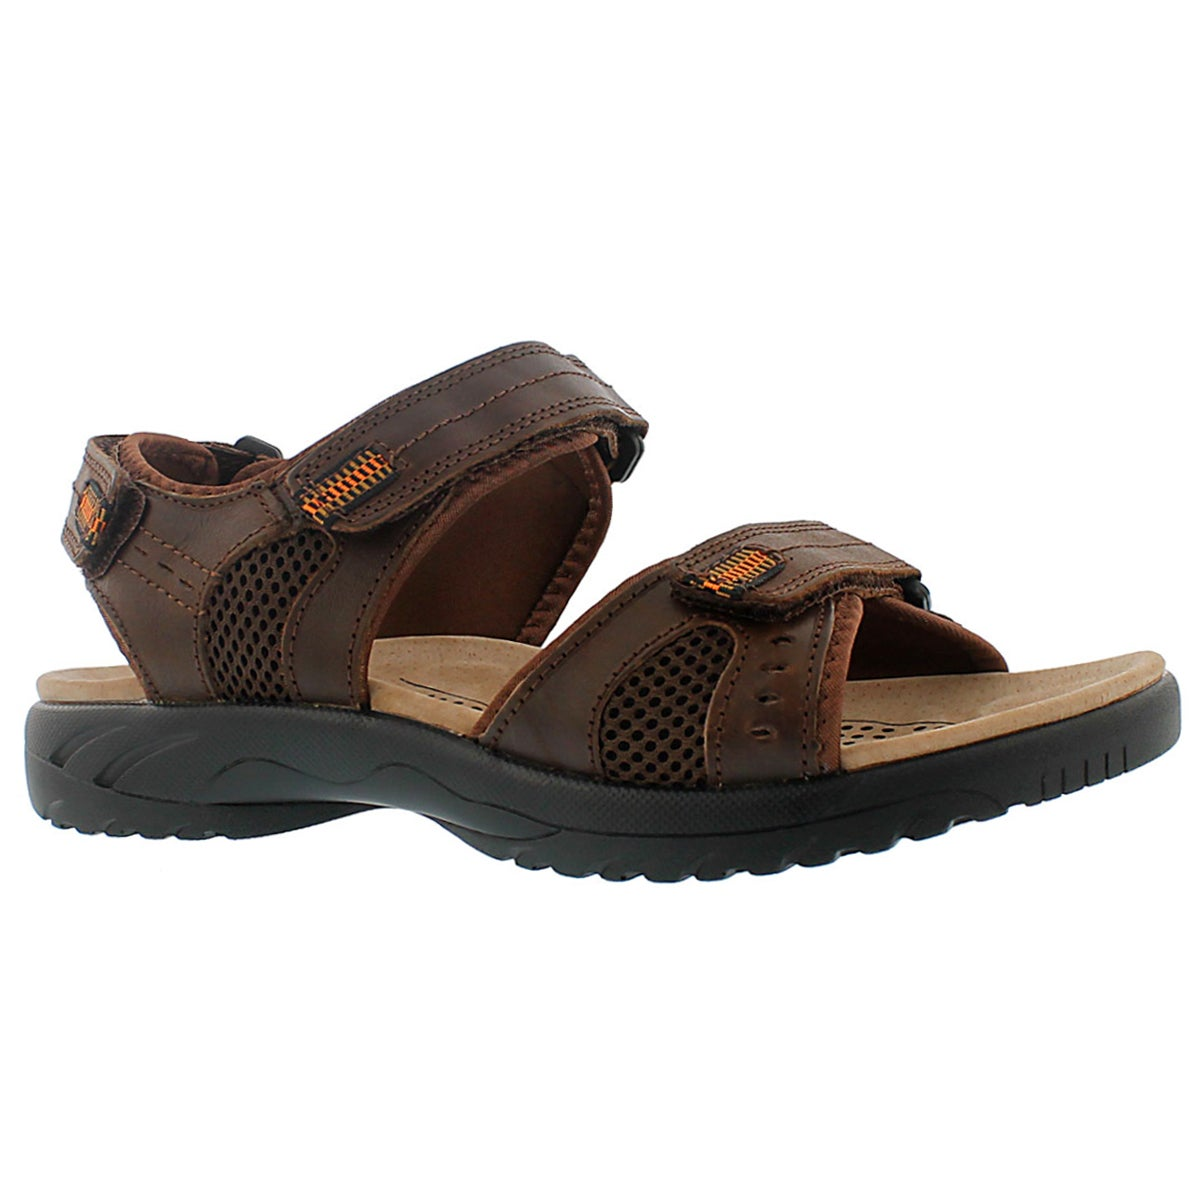 Men's KURT brown 3 strap sport sandals